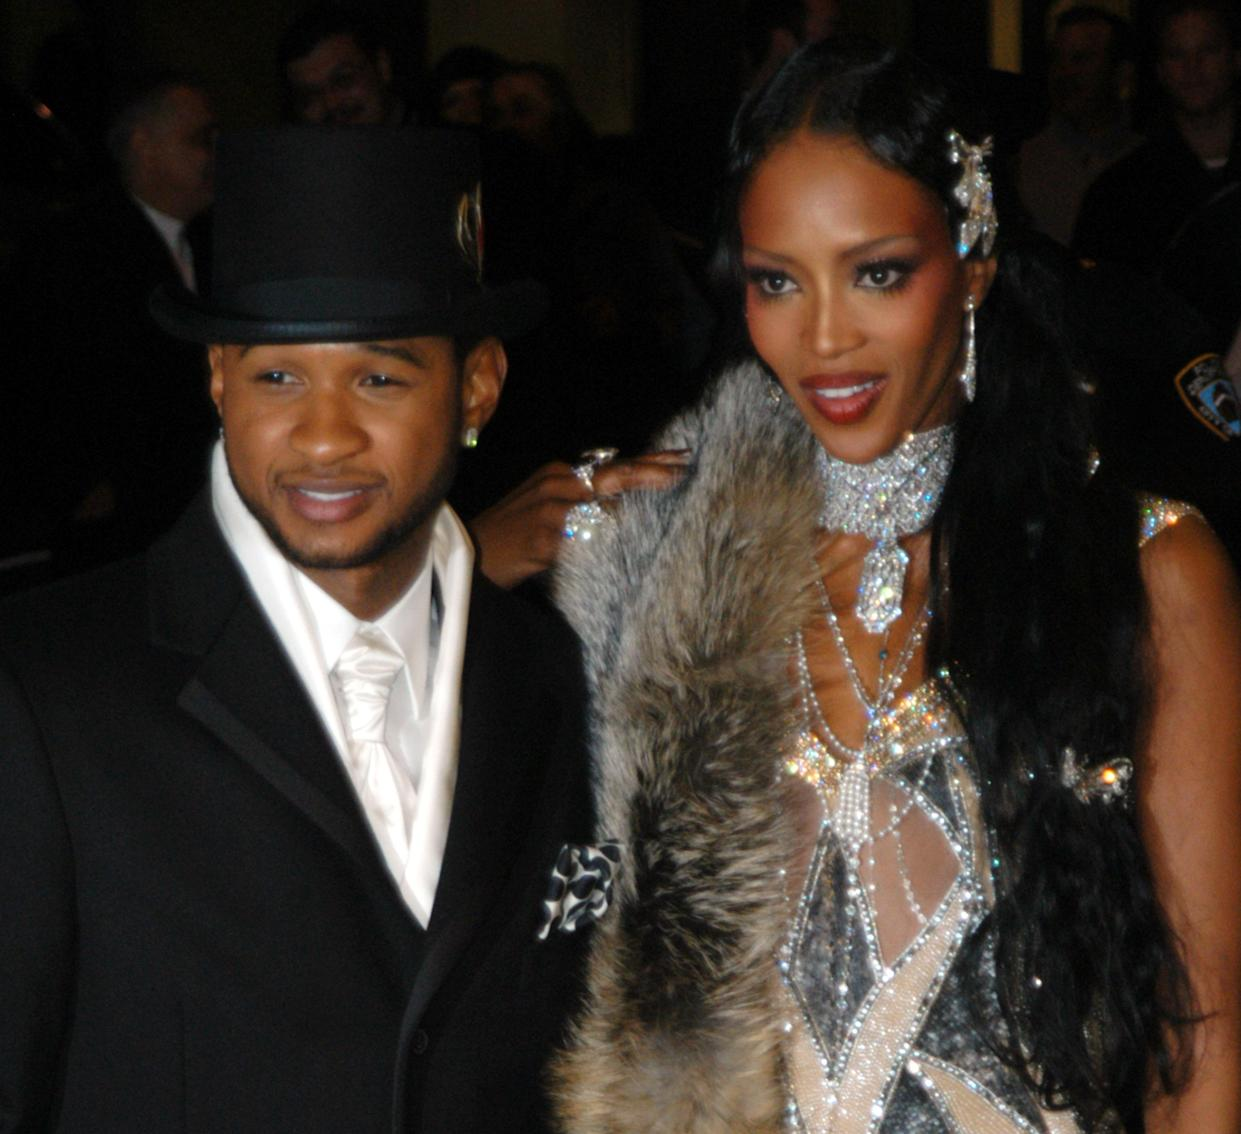 Usher and Naomi Campbell during Usher's 26th Birthday Party at Rainbow Room in New York City, New York, United States. (Photo by Carley Margolis/FilmMagic)